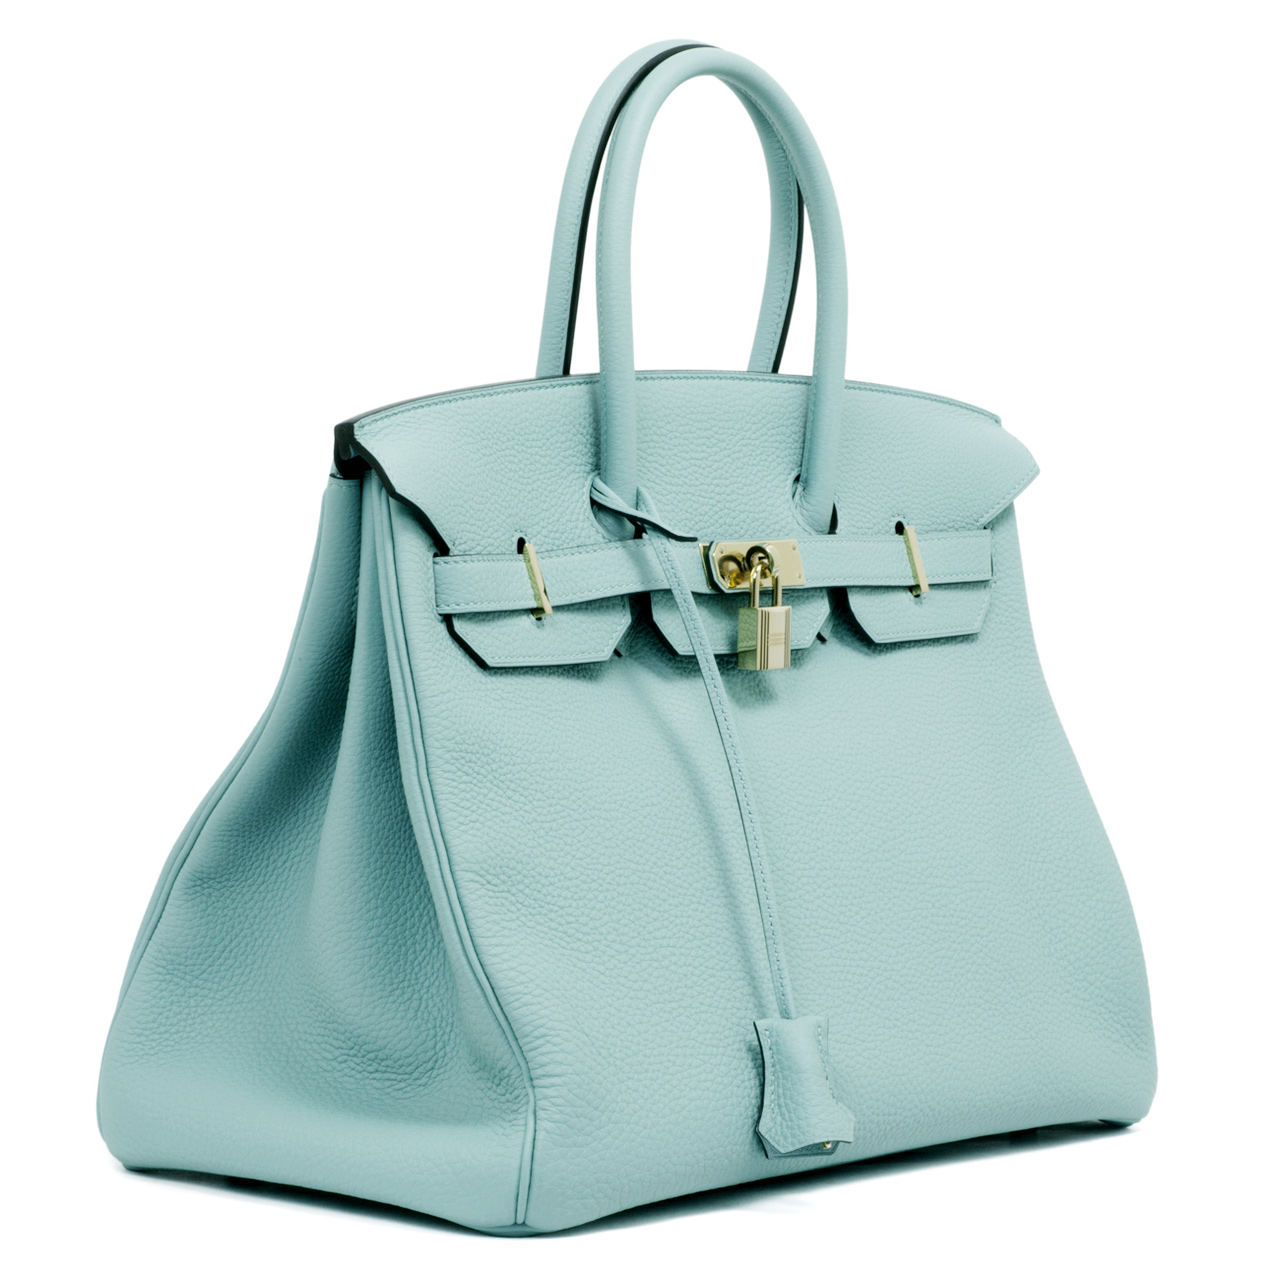 b64e3dafb597 Our selection of authentic pre-owned designer handbags is constantly  growing with new styles being put out for sale daily. We have a highly  knowledgeable ...